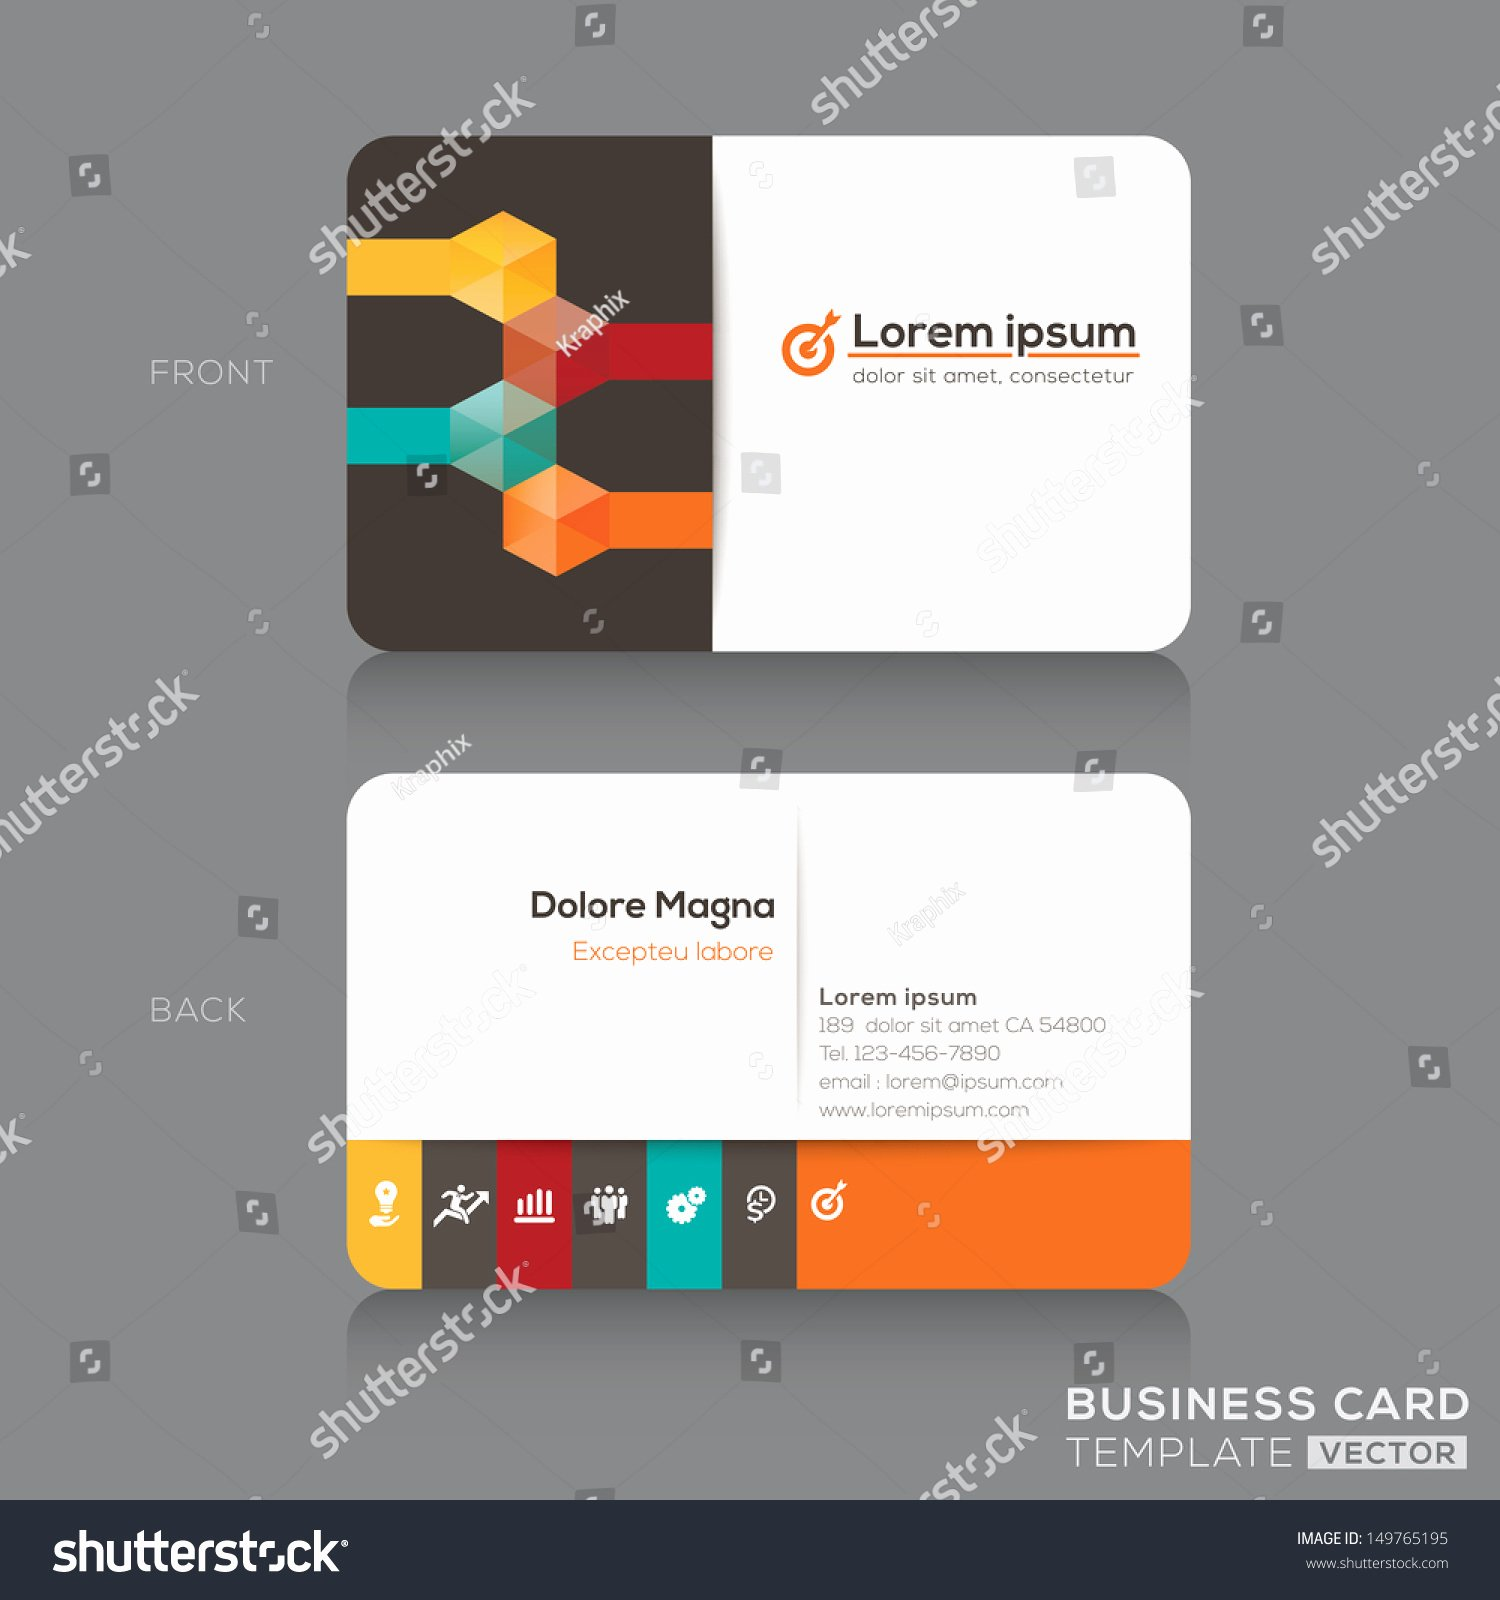 Business Card Layout Template Best Of Trendy isometric Business Cards Design Vector Stock Vector